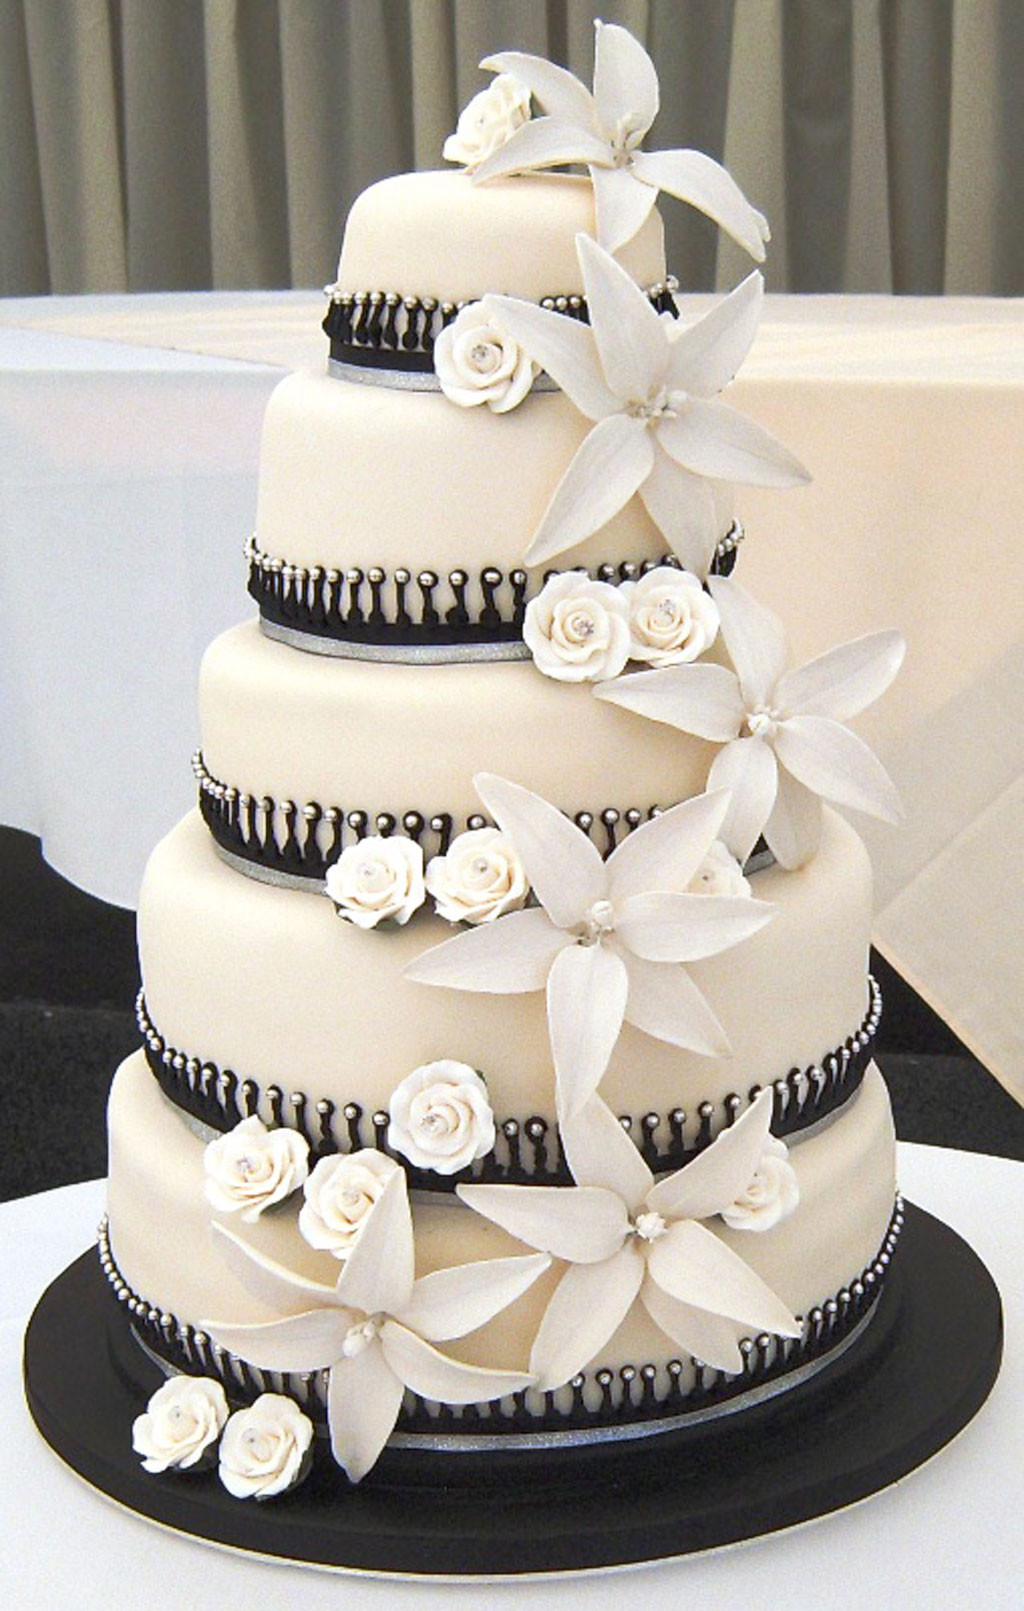 Wedding Cakes Designer  Black White Wedding Cake Designs Wedding Cake Cake Ideas